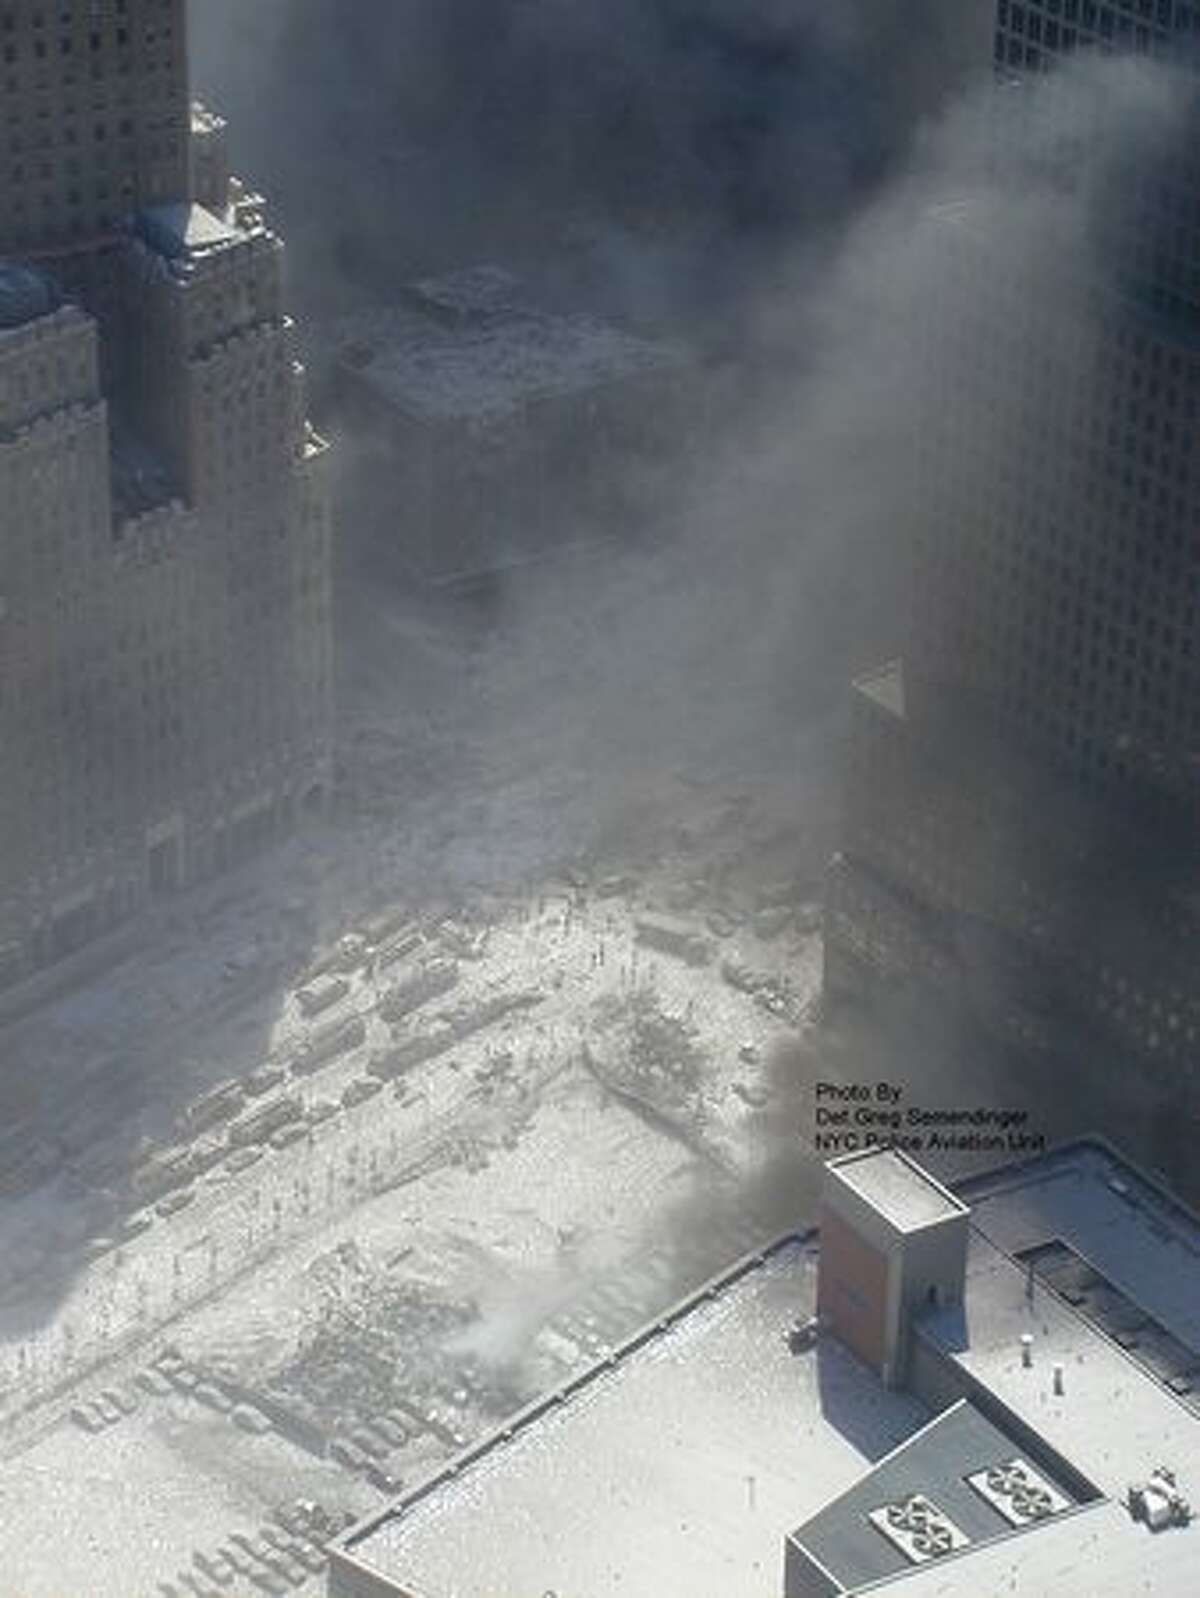 This photo taken Sept. 11, 2001 by the New York City Police Department and obtained by ABC News in 2010, which claims to have obtained it under the Freedom of Information Act, shows white ash covering the downtown area near the grounds of the World Trade Center in New York. (AP Photo/NYPD via ABC News, Det. Greg Semendinger)